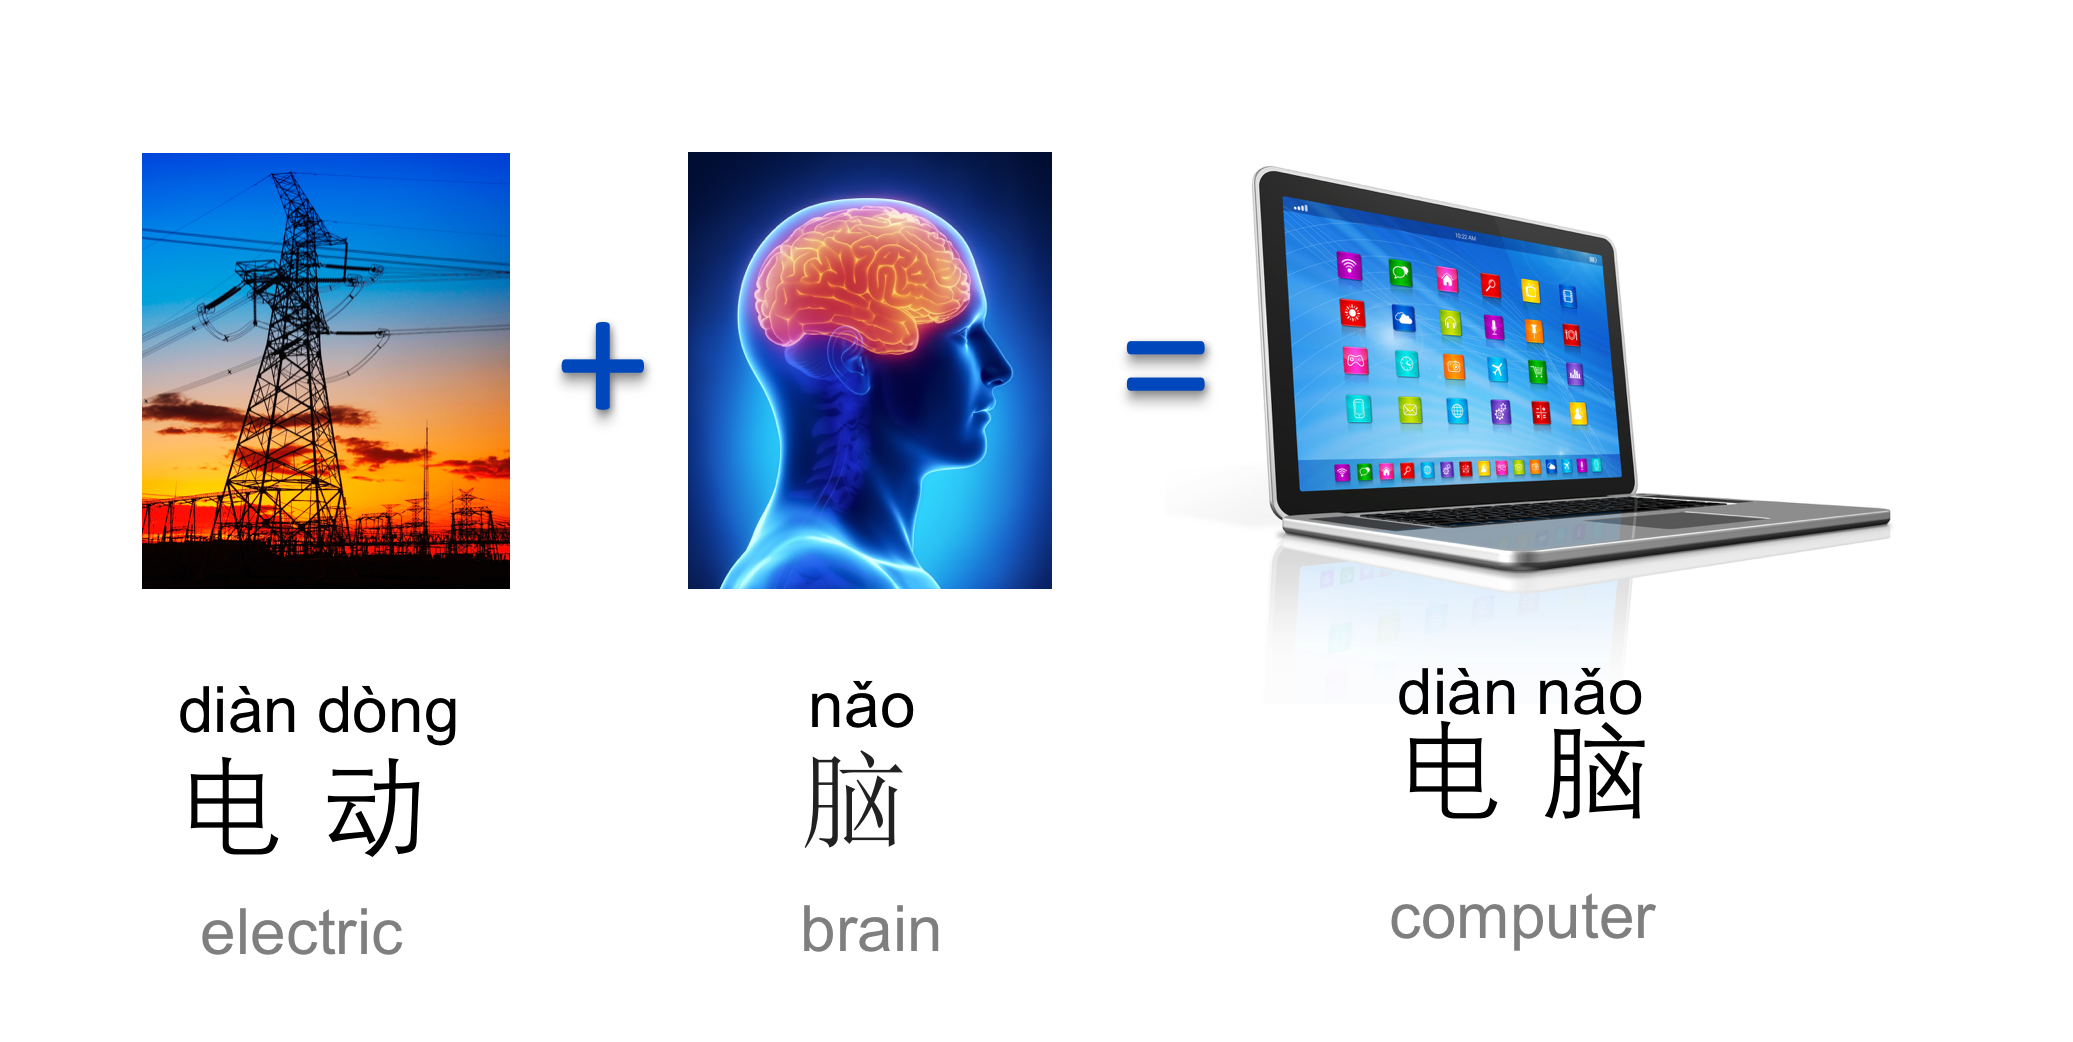 An image of an electric power tower, a brain and a computer to illustrate the compound word computer.